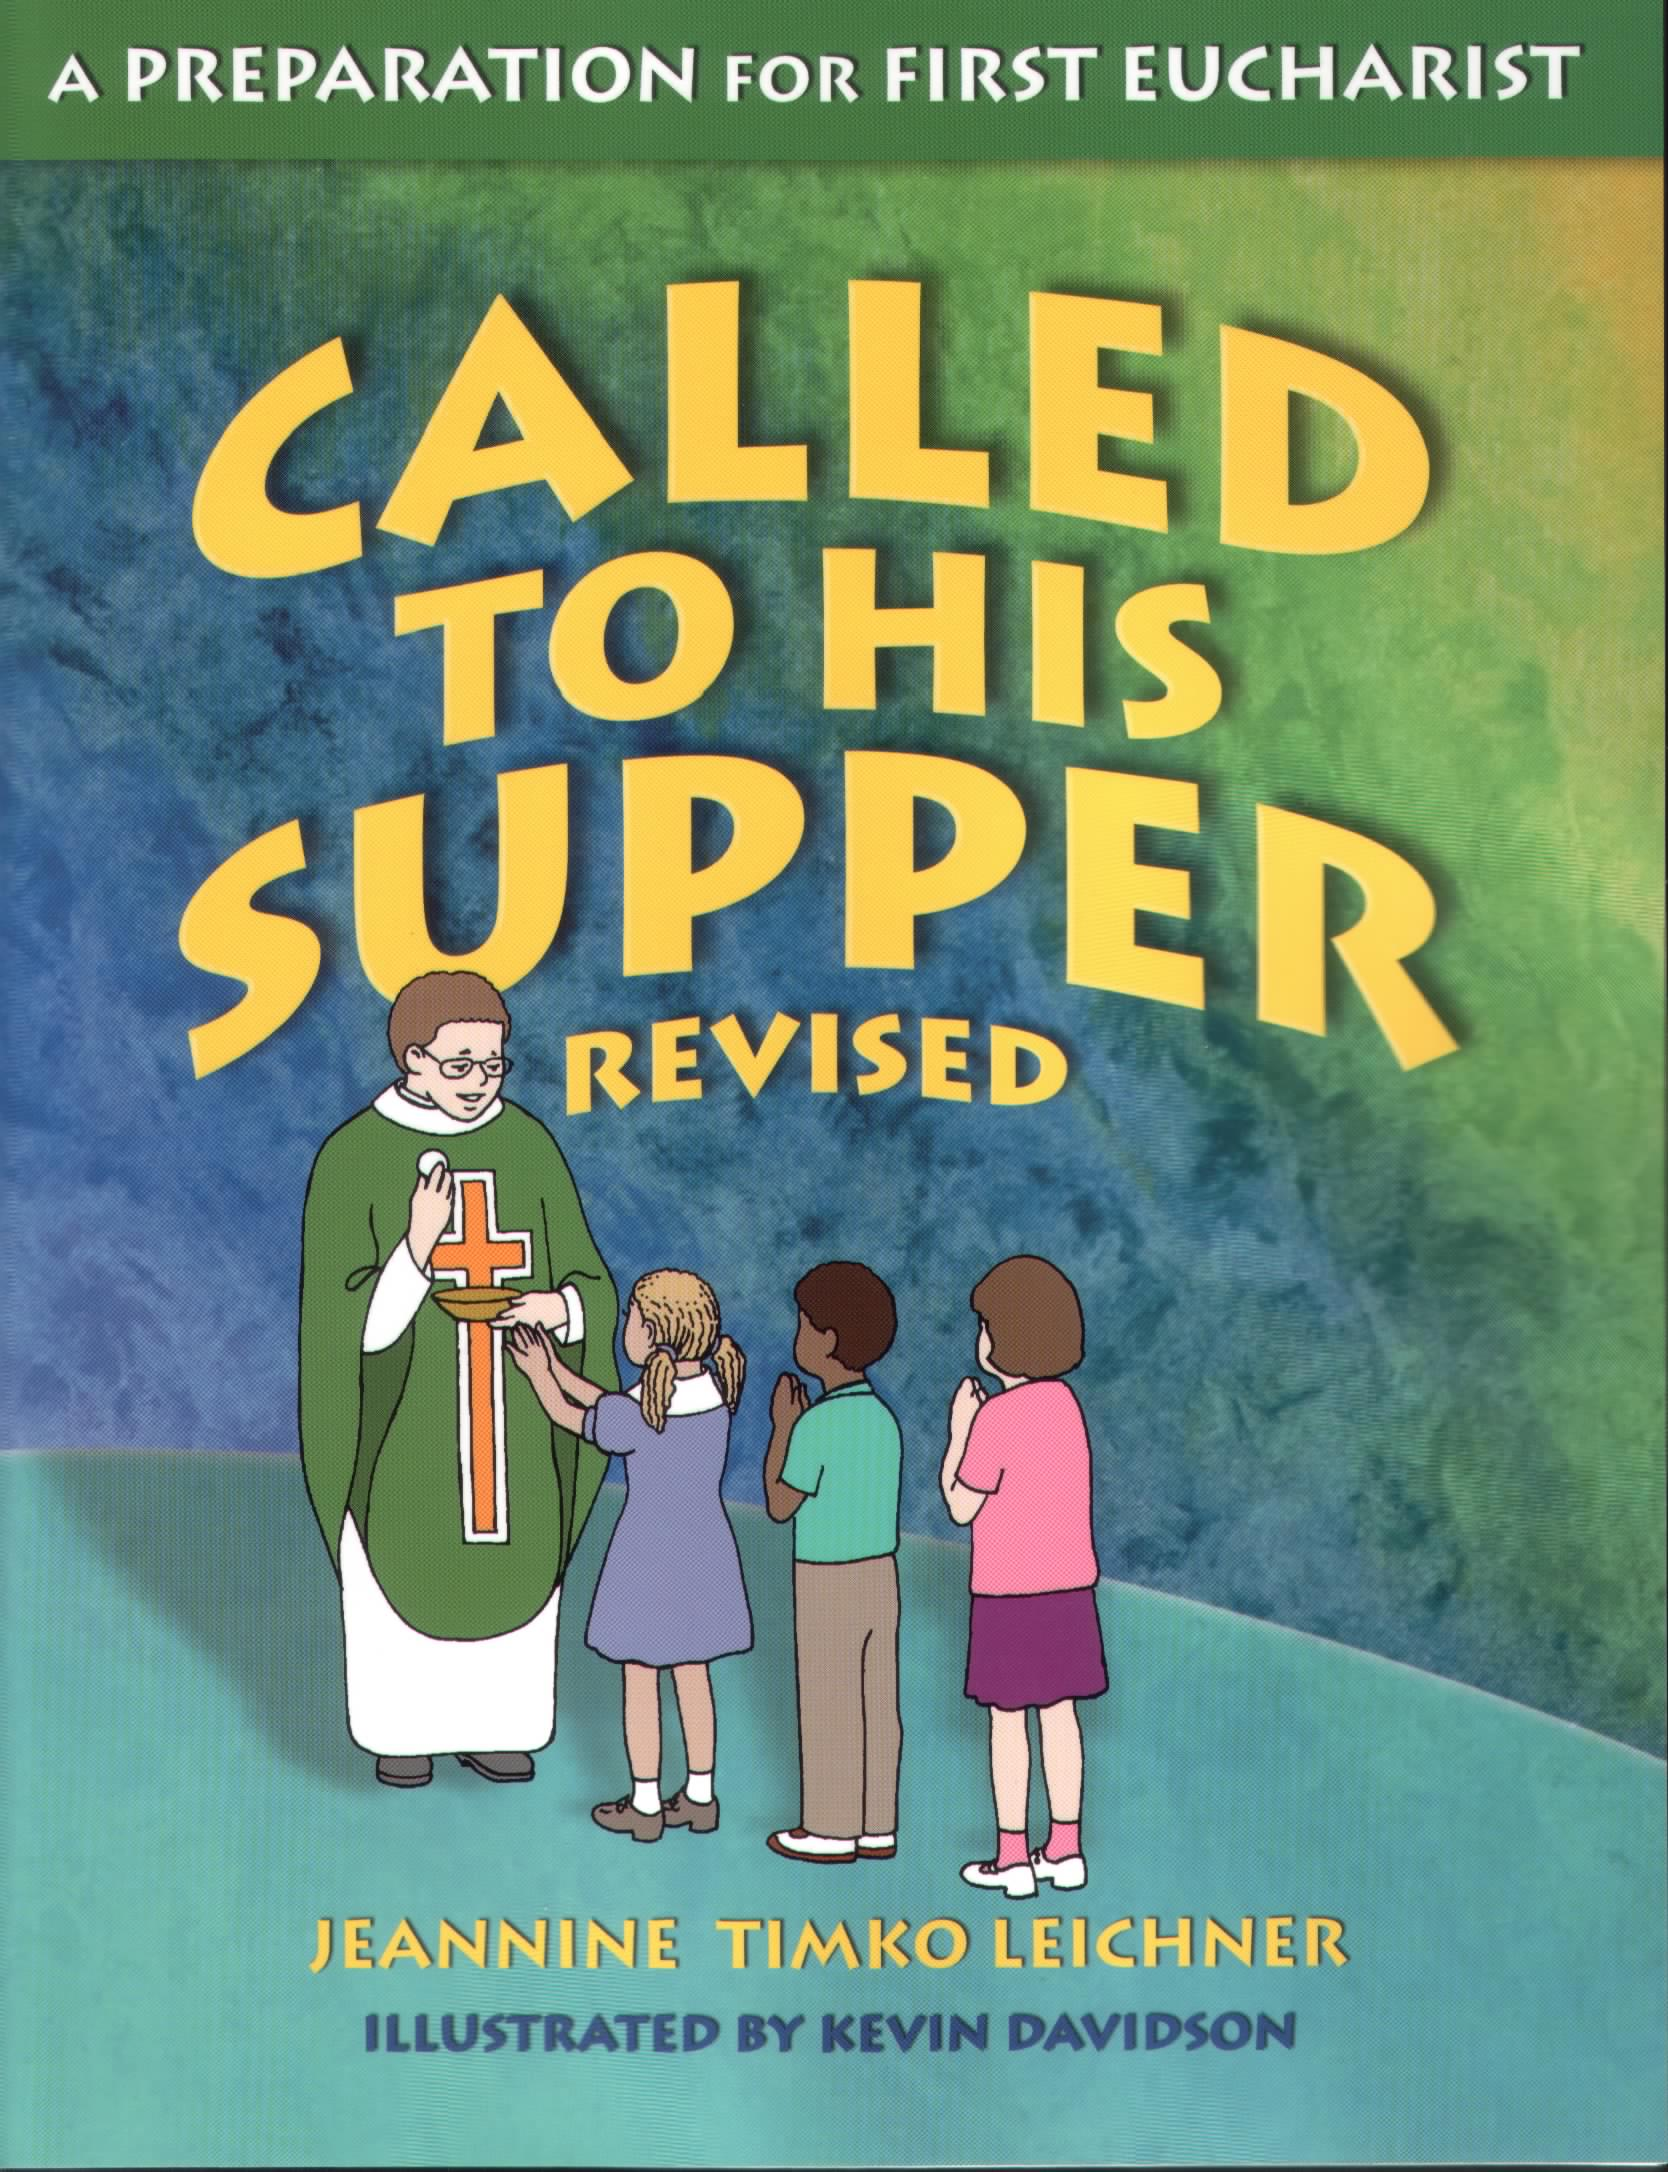 Called to His Supper: A Preparation for First Eurcharist / Jeannine Timko Leichner